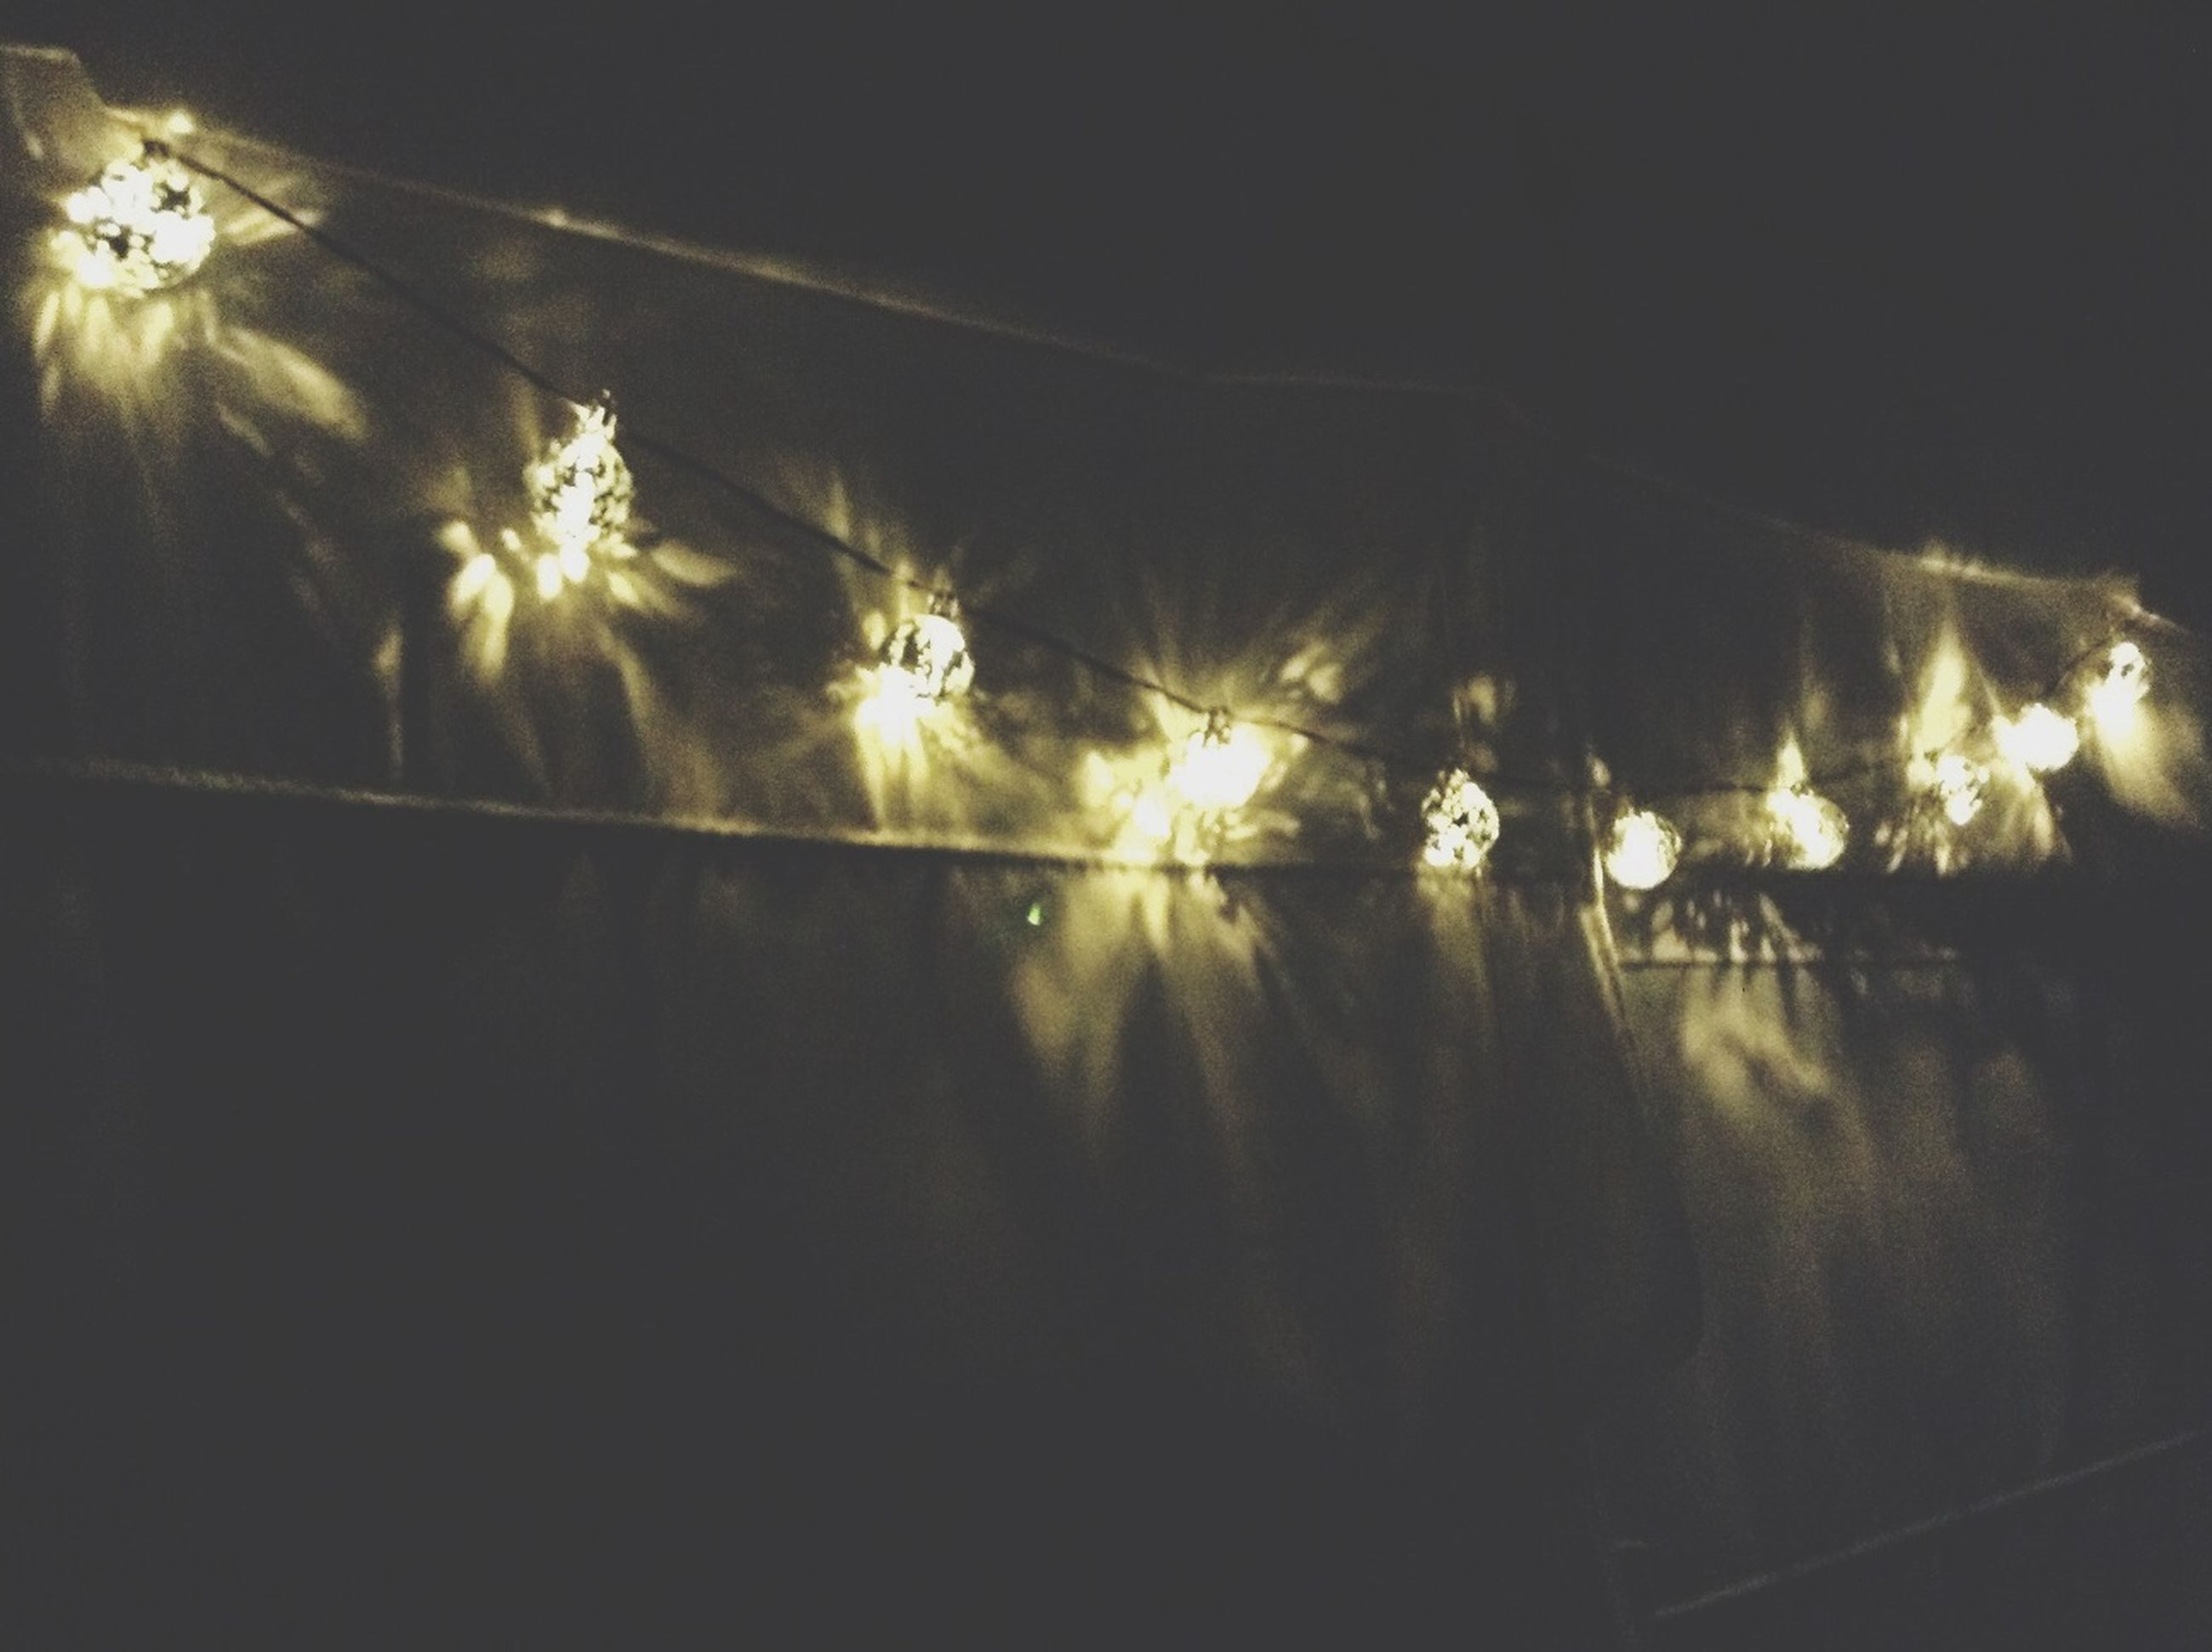 illuminated, night, lighting equipment, reflection, indoors, glowing, dark, water, light - natural phenomenon, no people, decoration, copy space, hanging, lit, nature, light, electricity, celebration, electric light